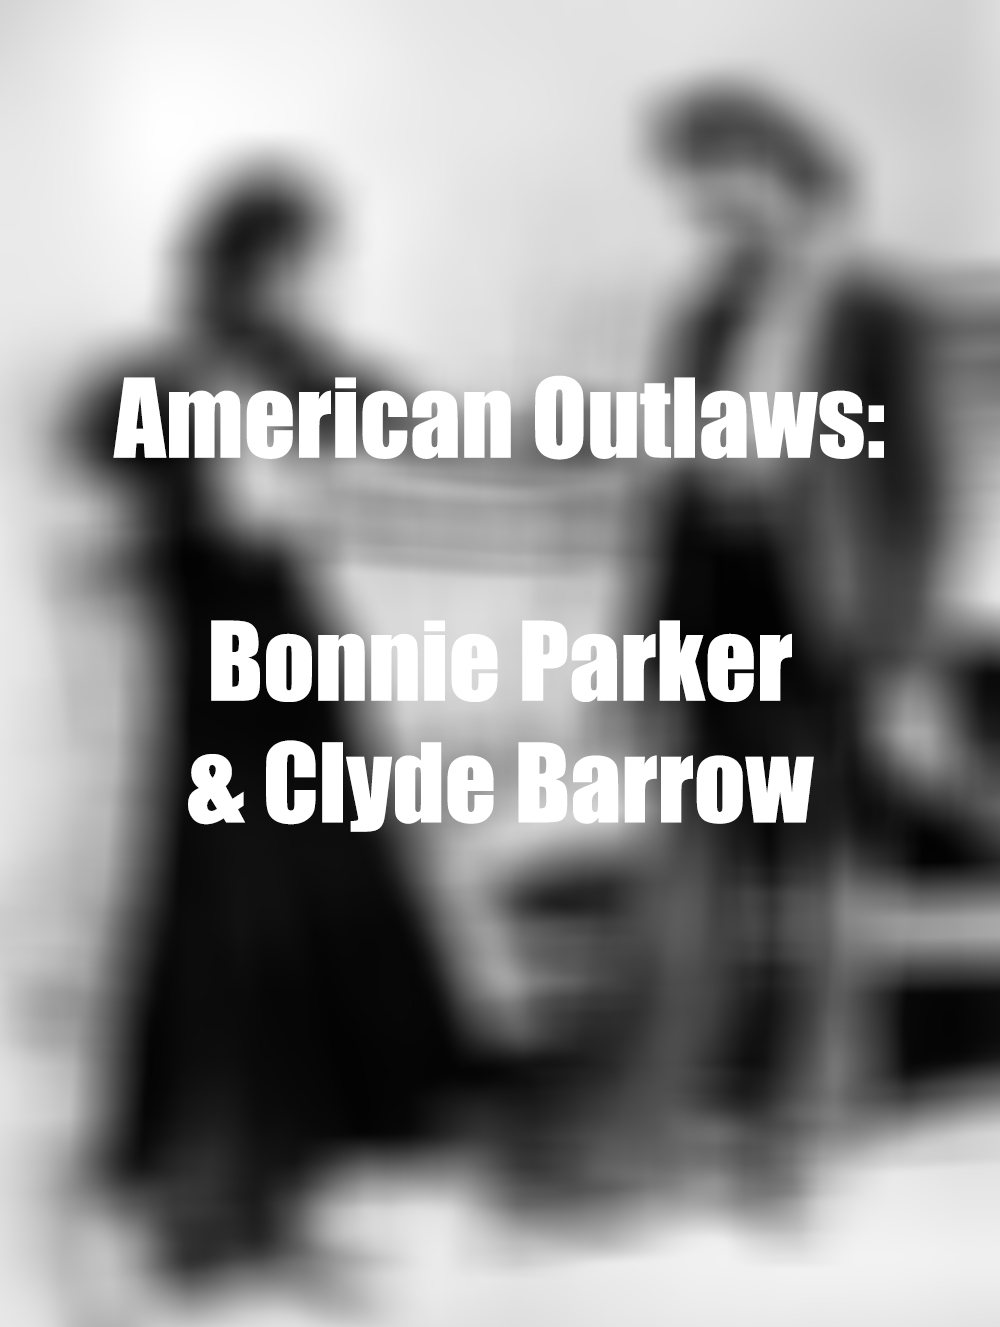 bonnie and clyde famous american outlaws Two guns belonging to american outlaws bonnie and clyde barrow will be up for auction in september.